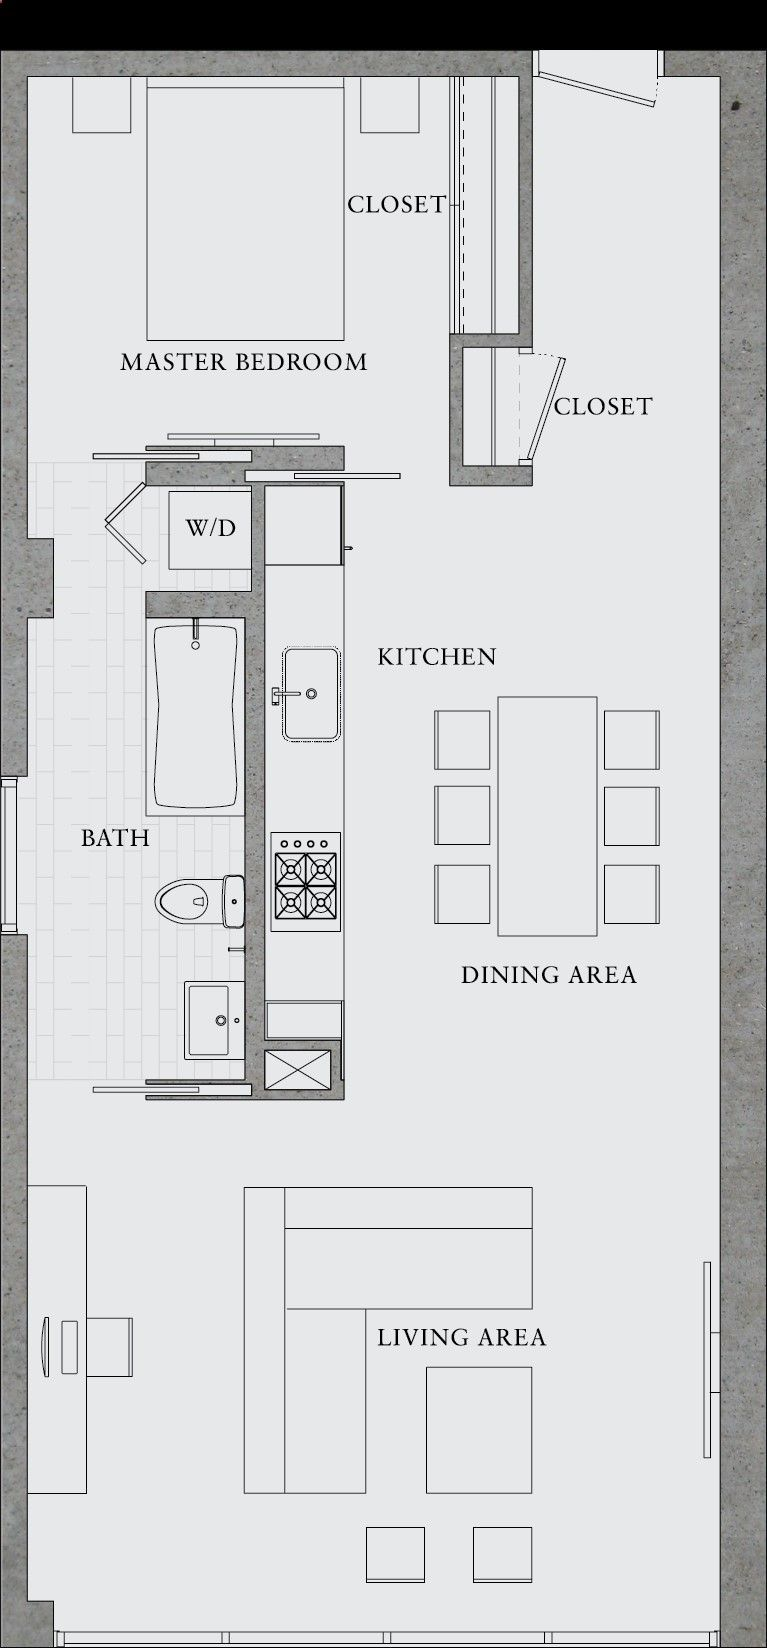 Container house 8 octavia 303 who else wants simple for Kodasema maison